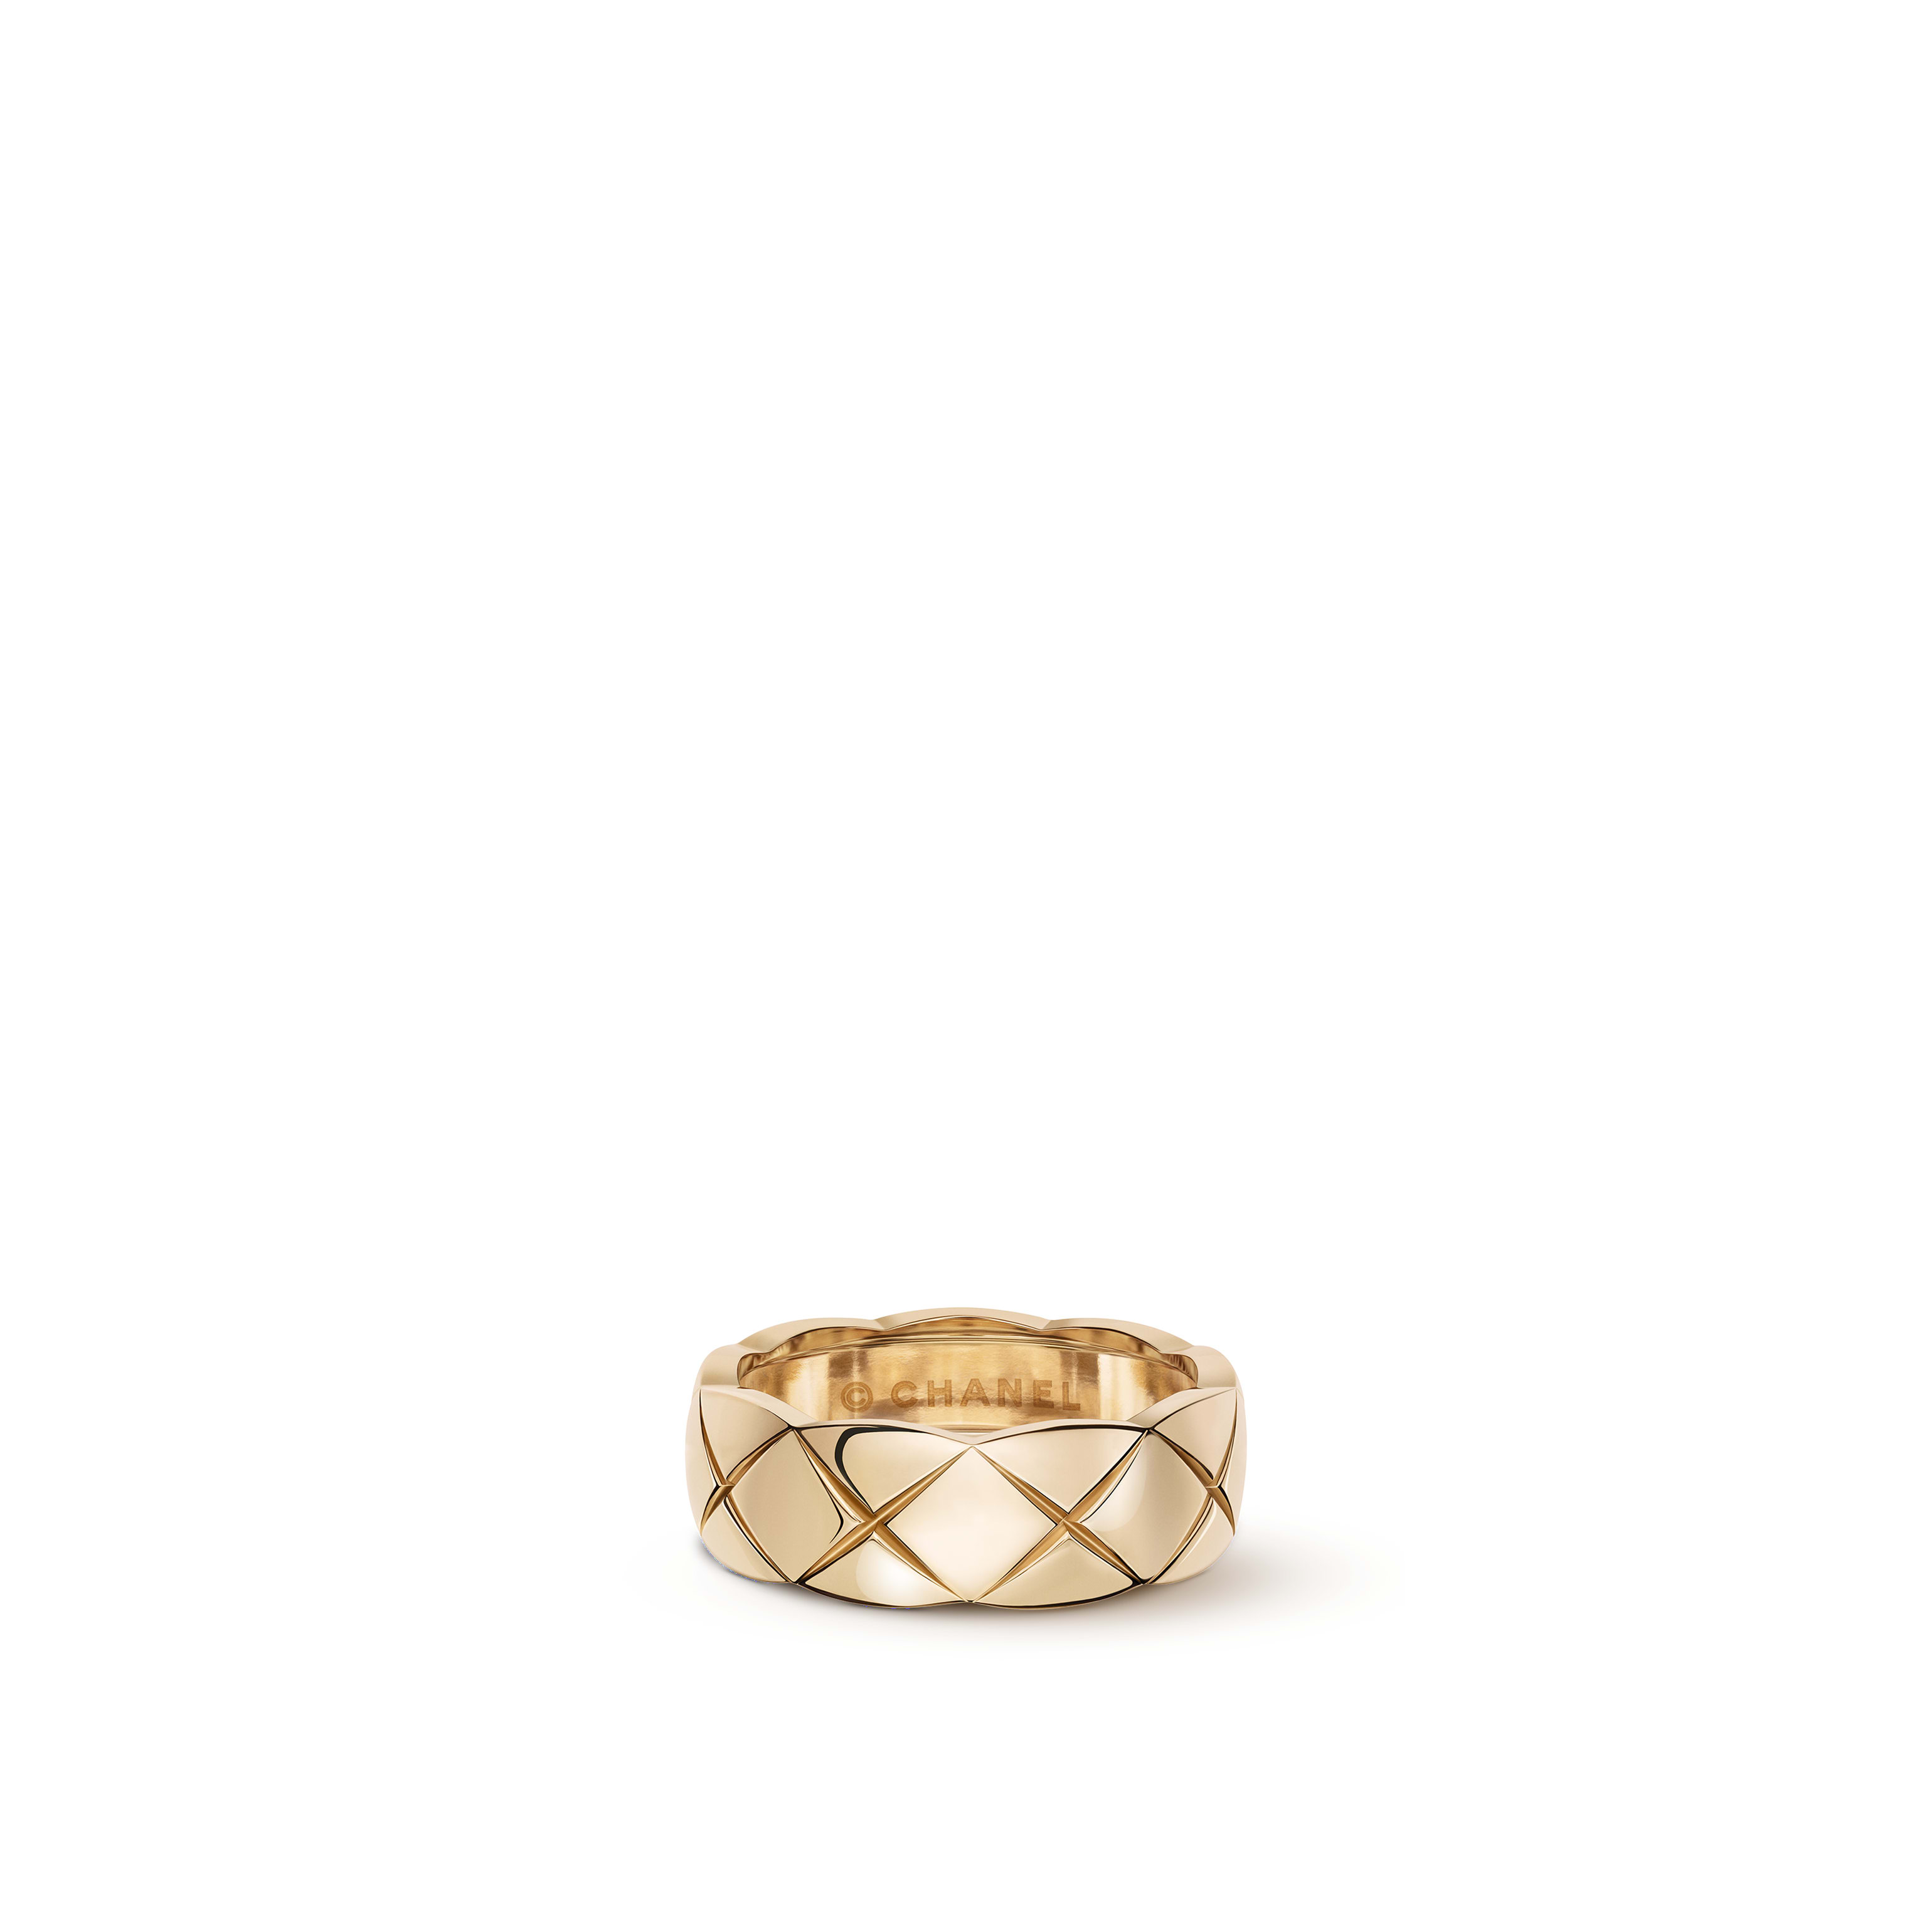 Coco Crush ring - Quilted motif, small version, 18K BEIGE GOLD - CHANEL - Default view - see standard sized version